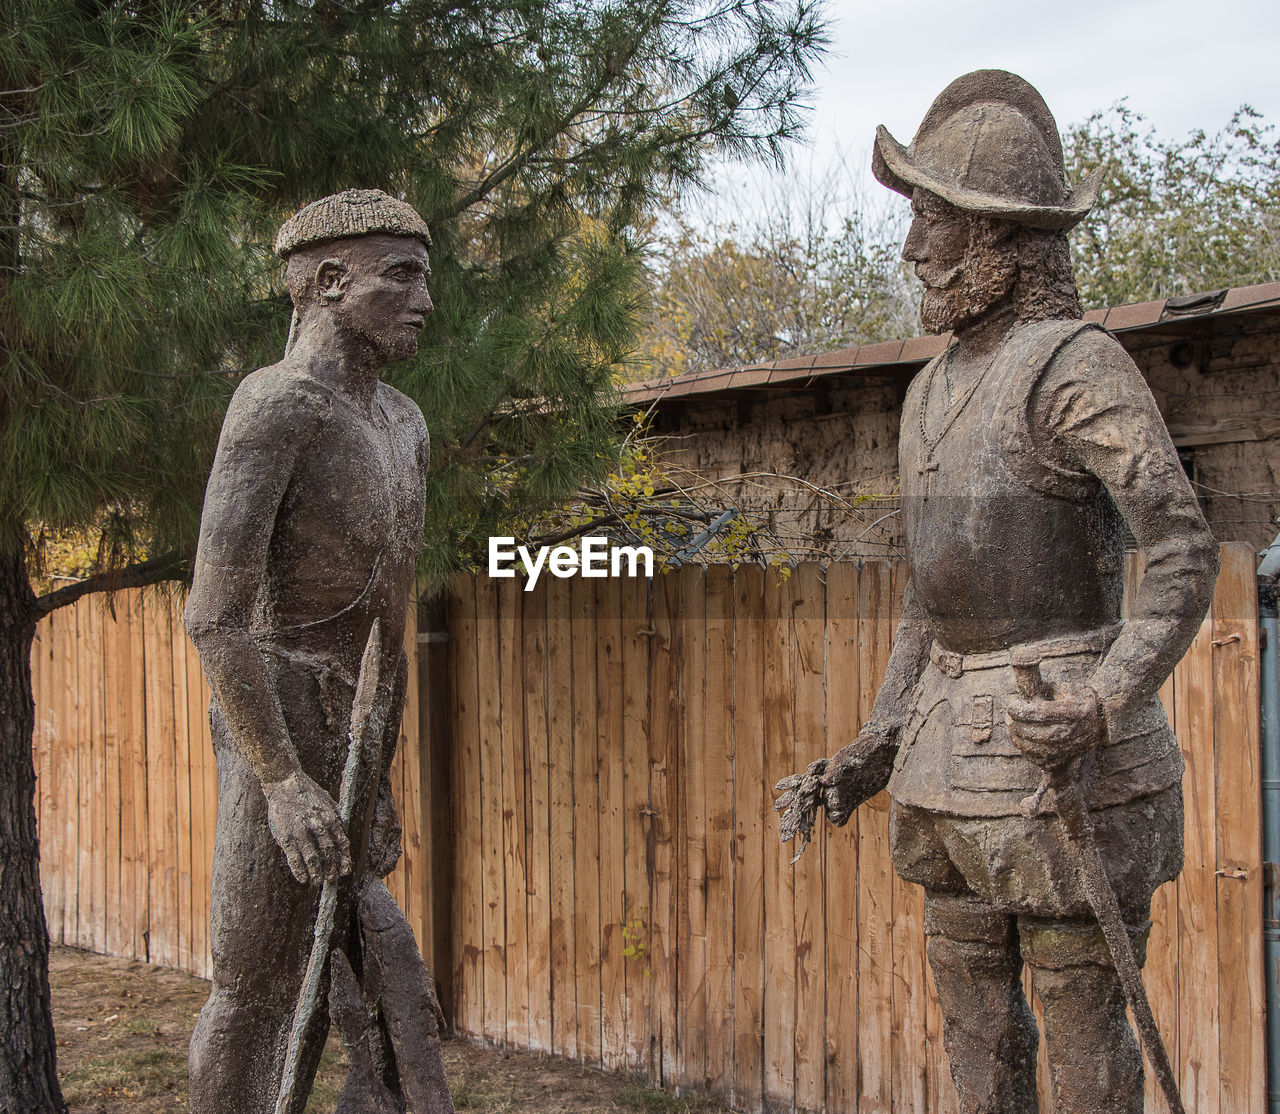 representation, sculpture, statue, human representation, male likeness, art and craft, craft, creativity, tree, no people, day, plant, nature, park, architecture, park - man made space, female likeness, carving - craft product, wood - material, stone material